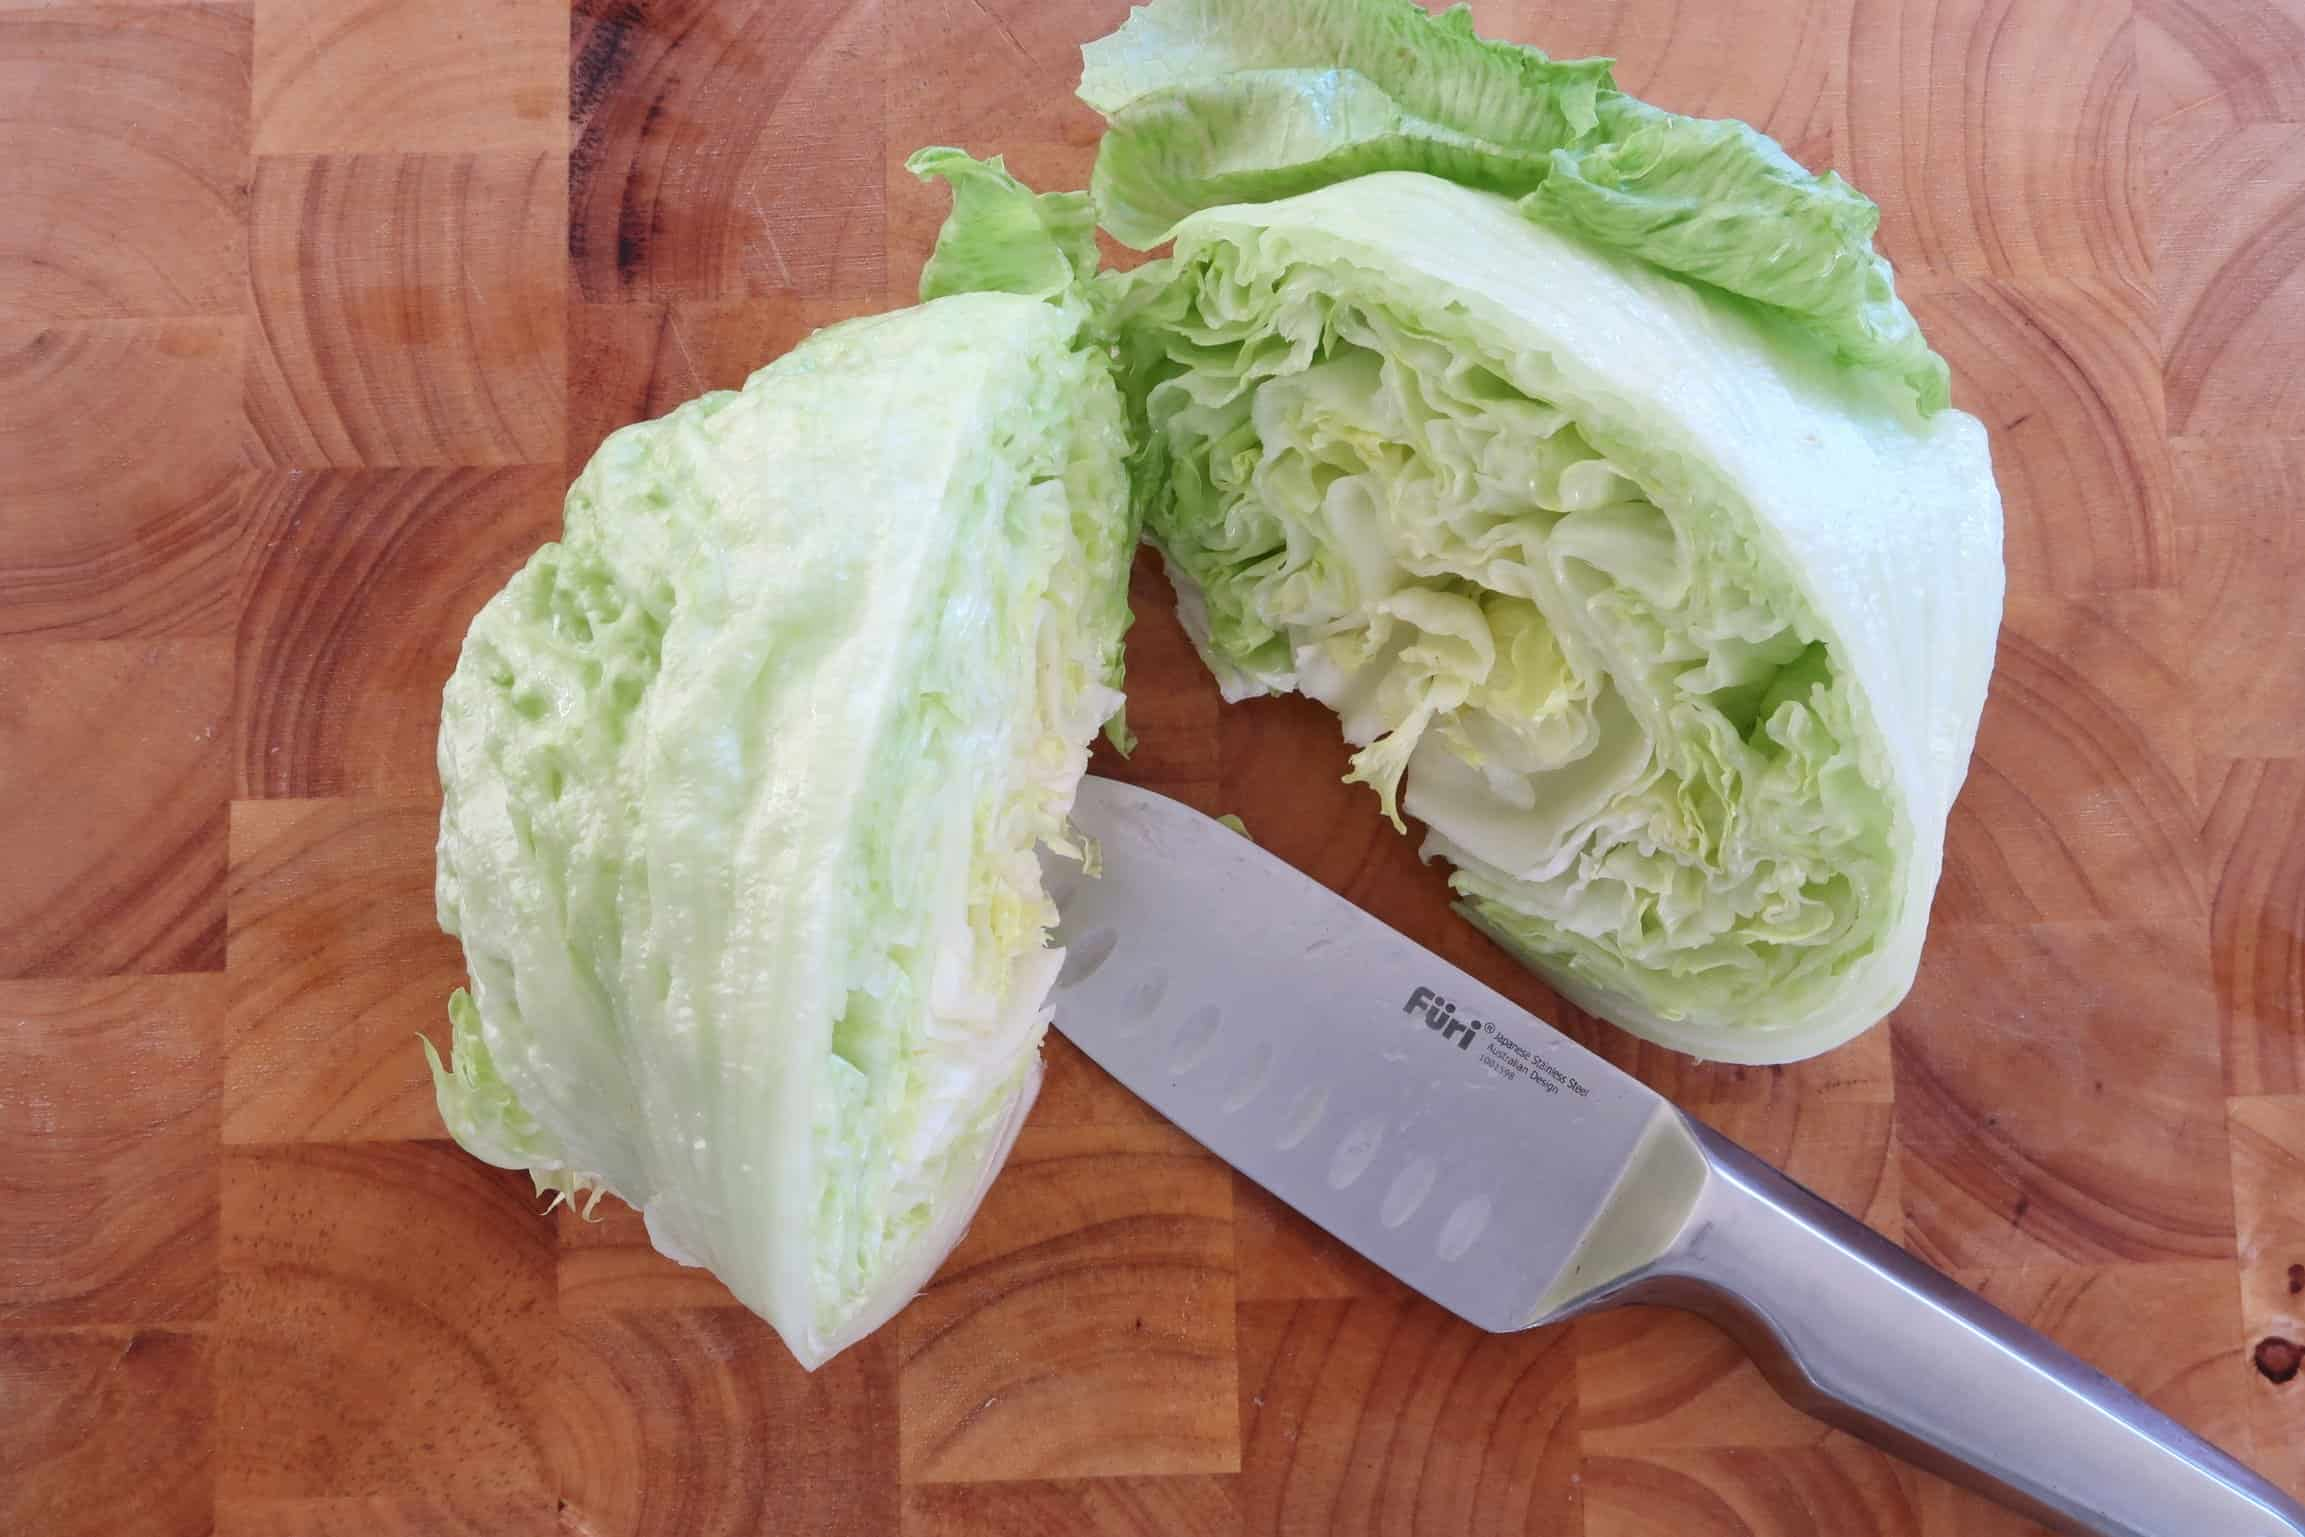 San Chow Bow lettuce cut in half, washed and separated in to cut to serve the San Chow Bow in